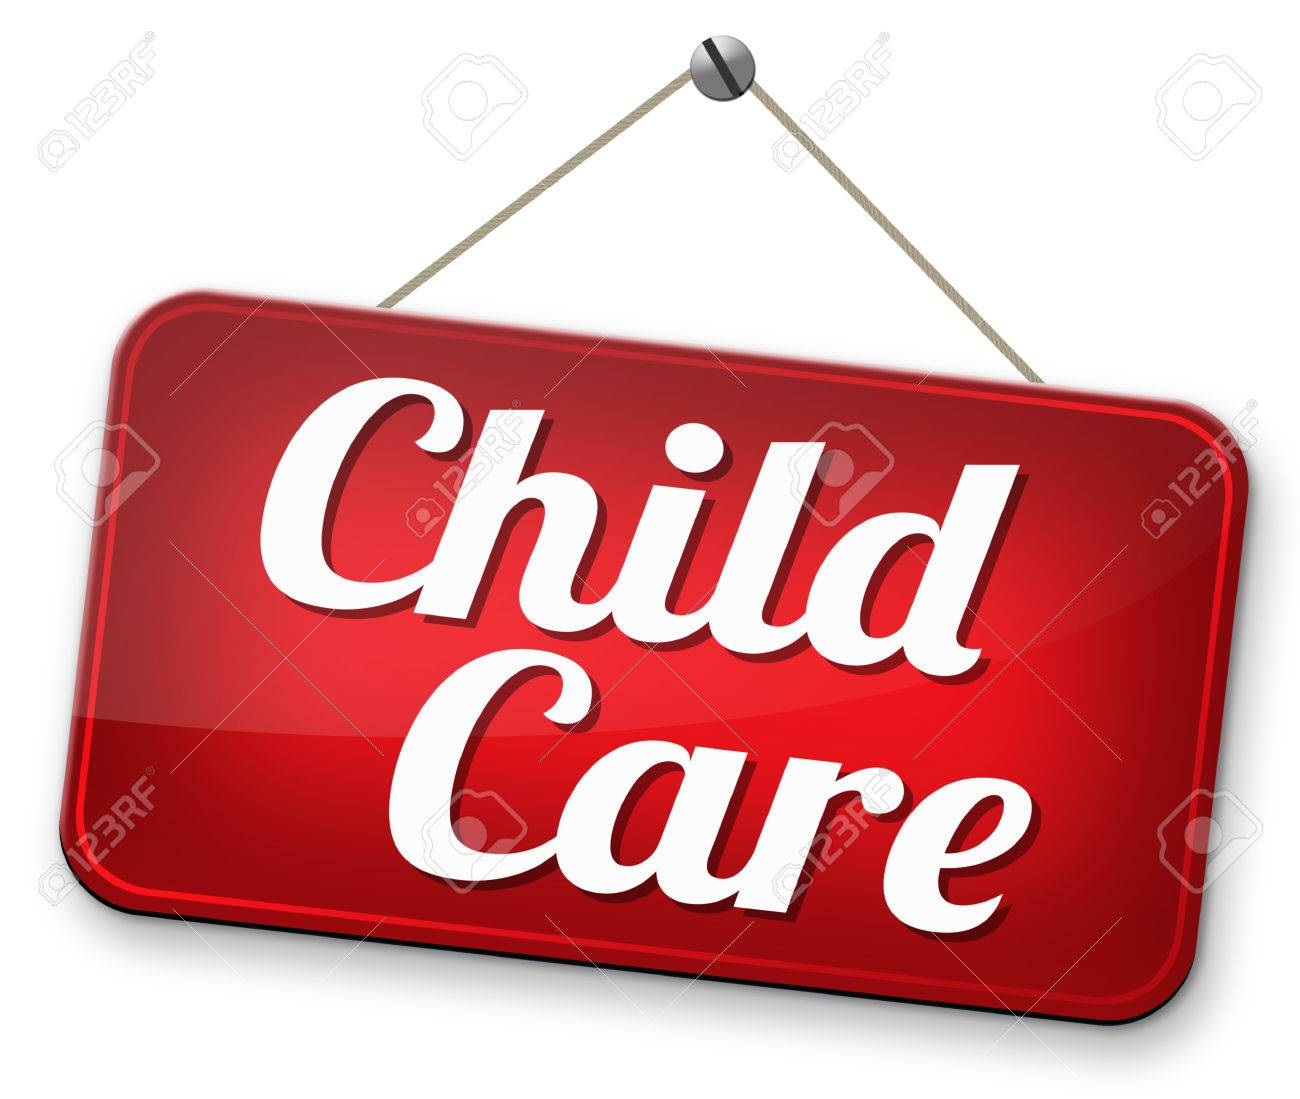 daycare sign chatorioles child care in daycare or crèche by nanny or au pair parenting